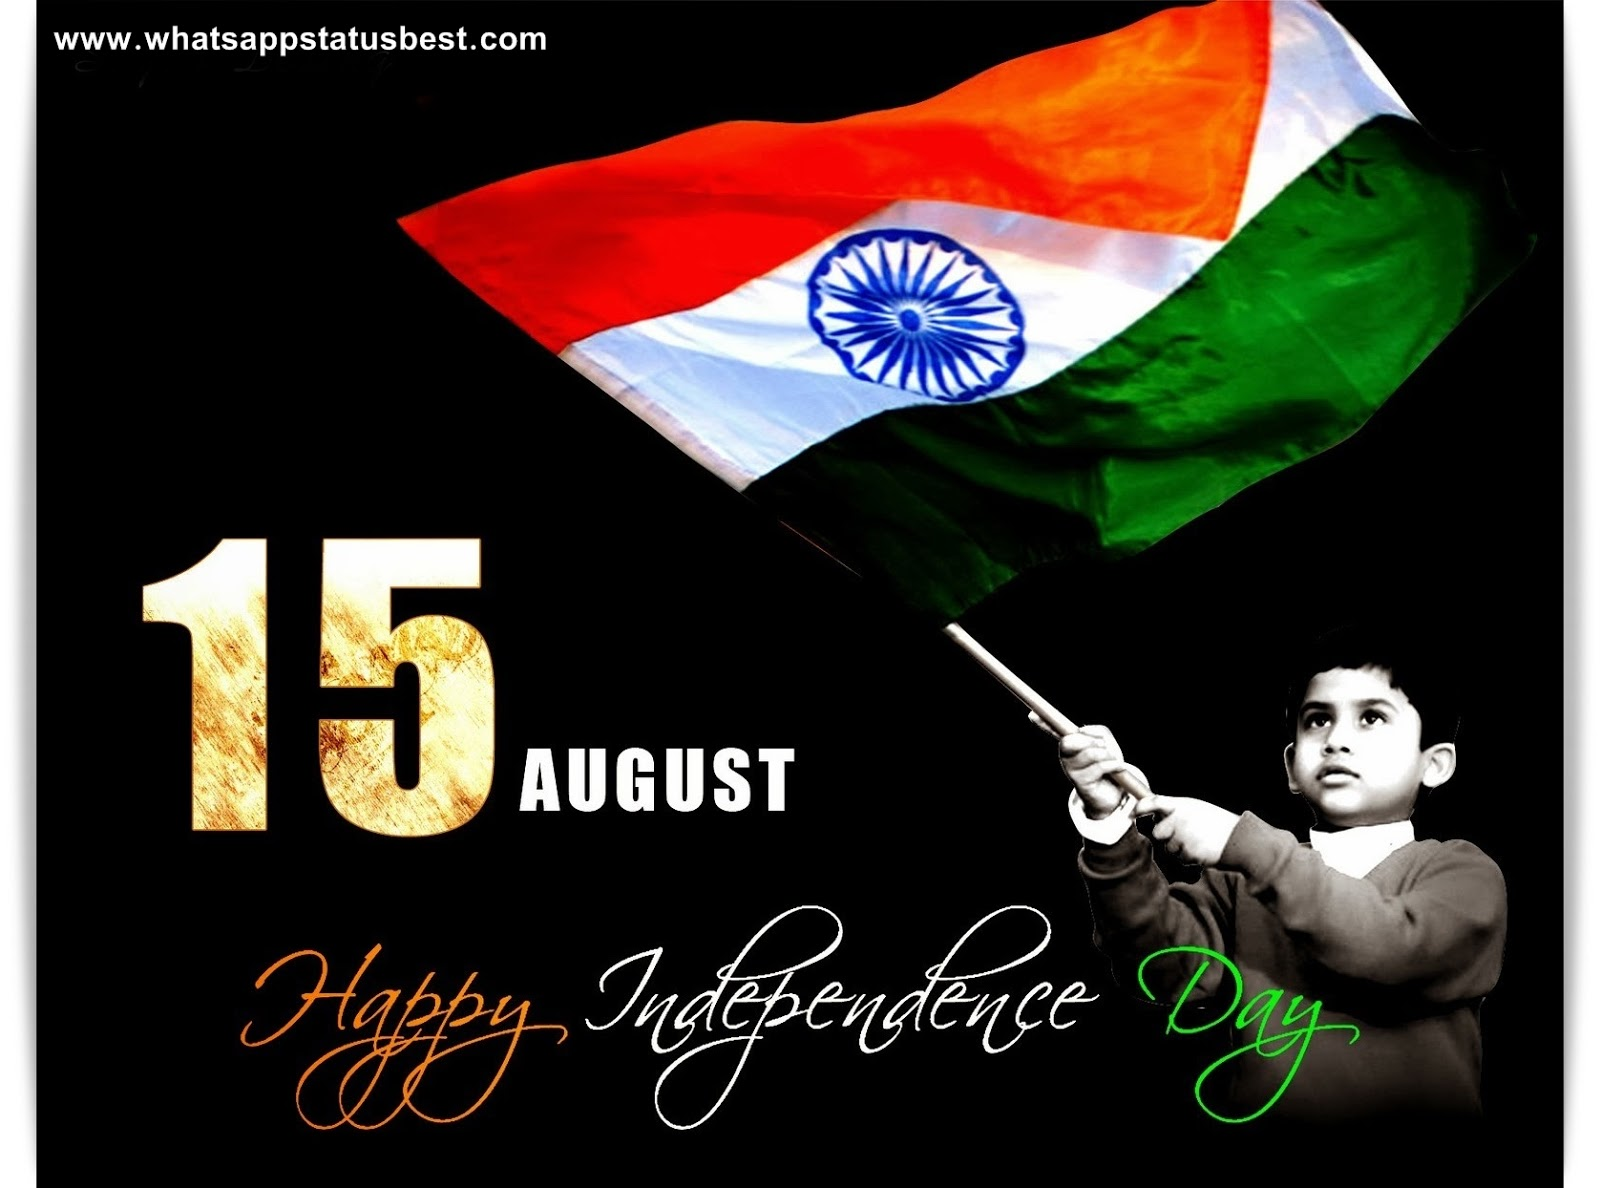 Independence day Hd wallpaper 2016